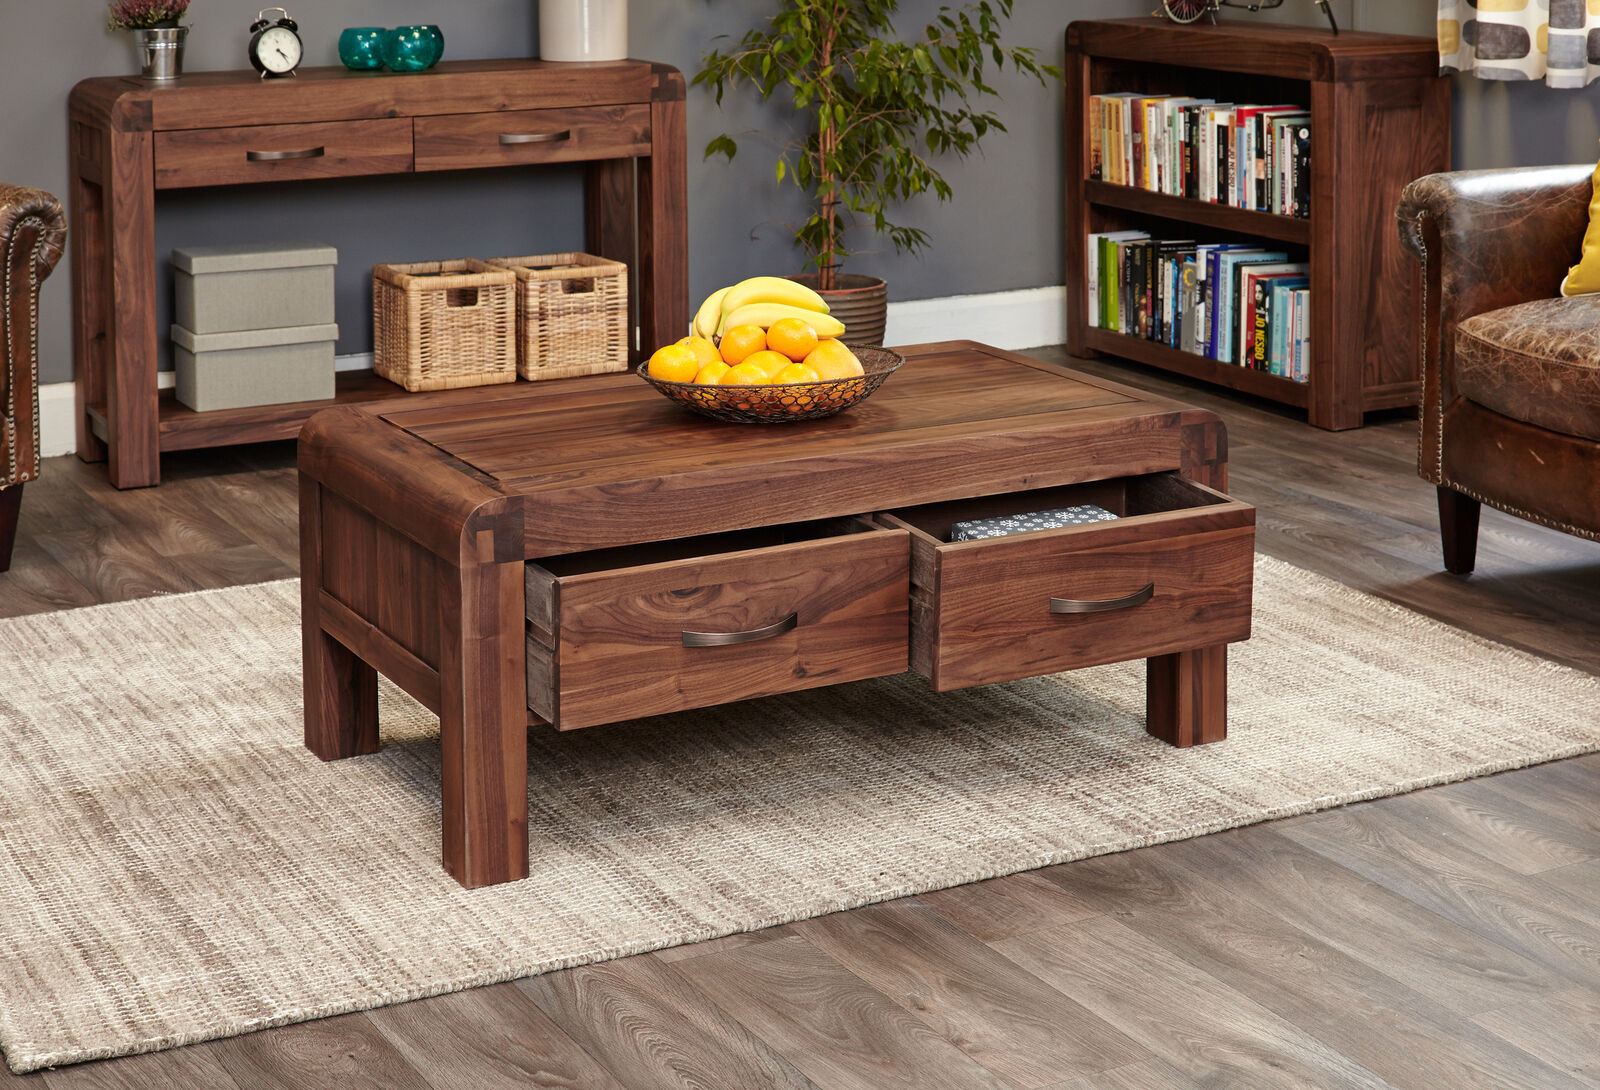 Details About Shiro Premium Dark Wood Coffee Table With 2 Drawers Modern Solid Walnut